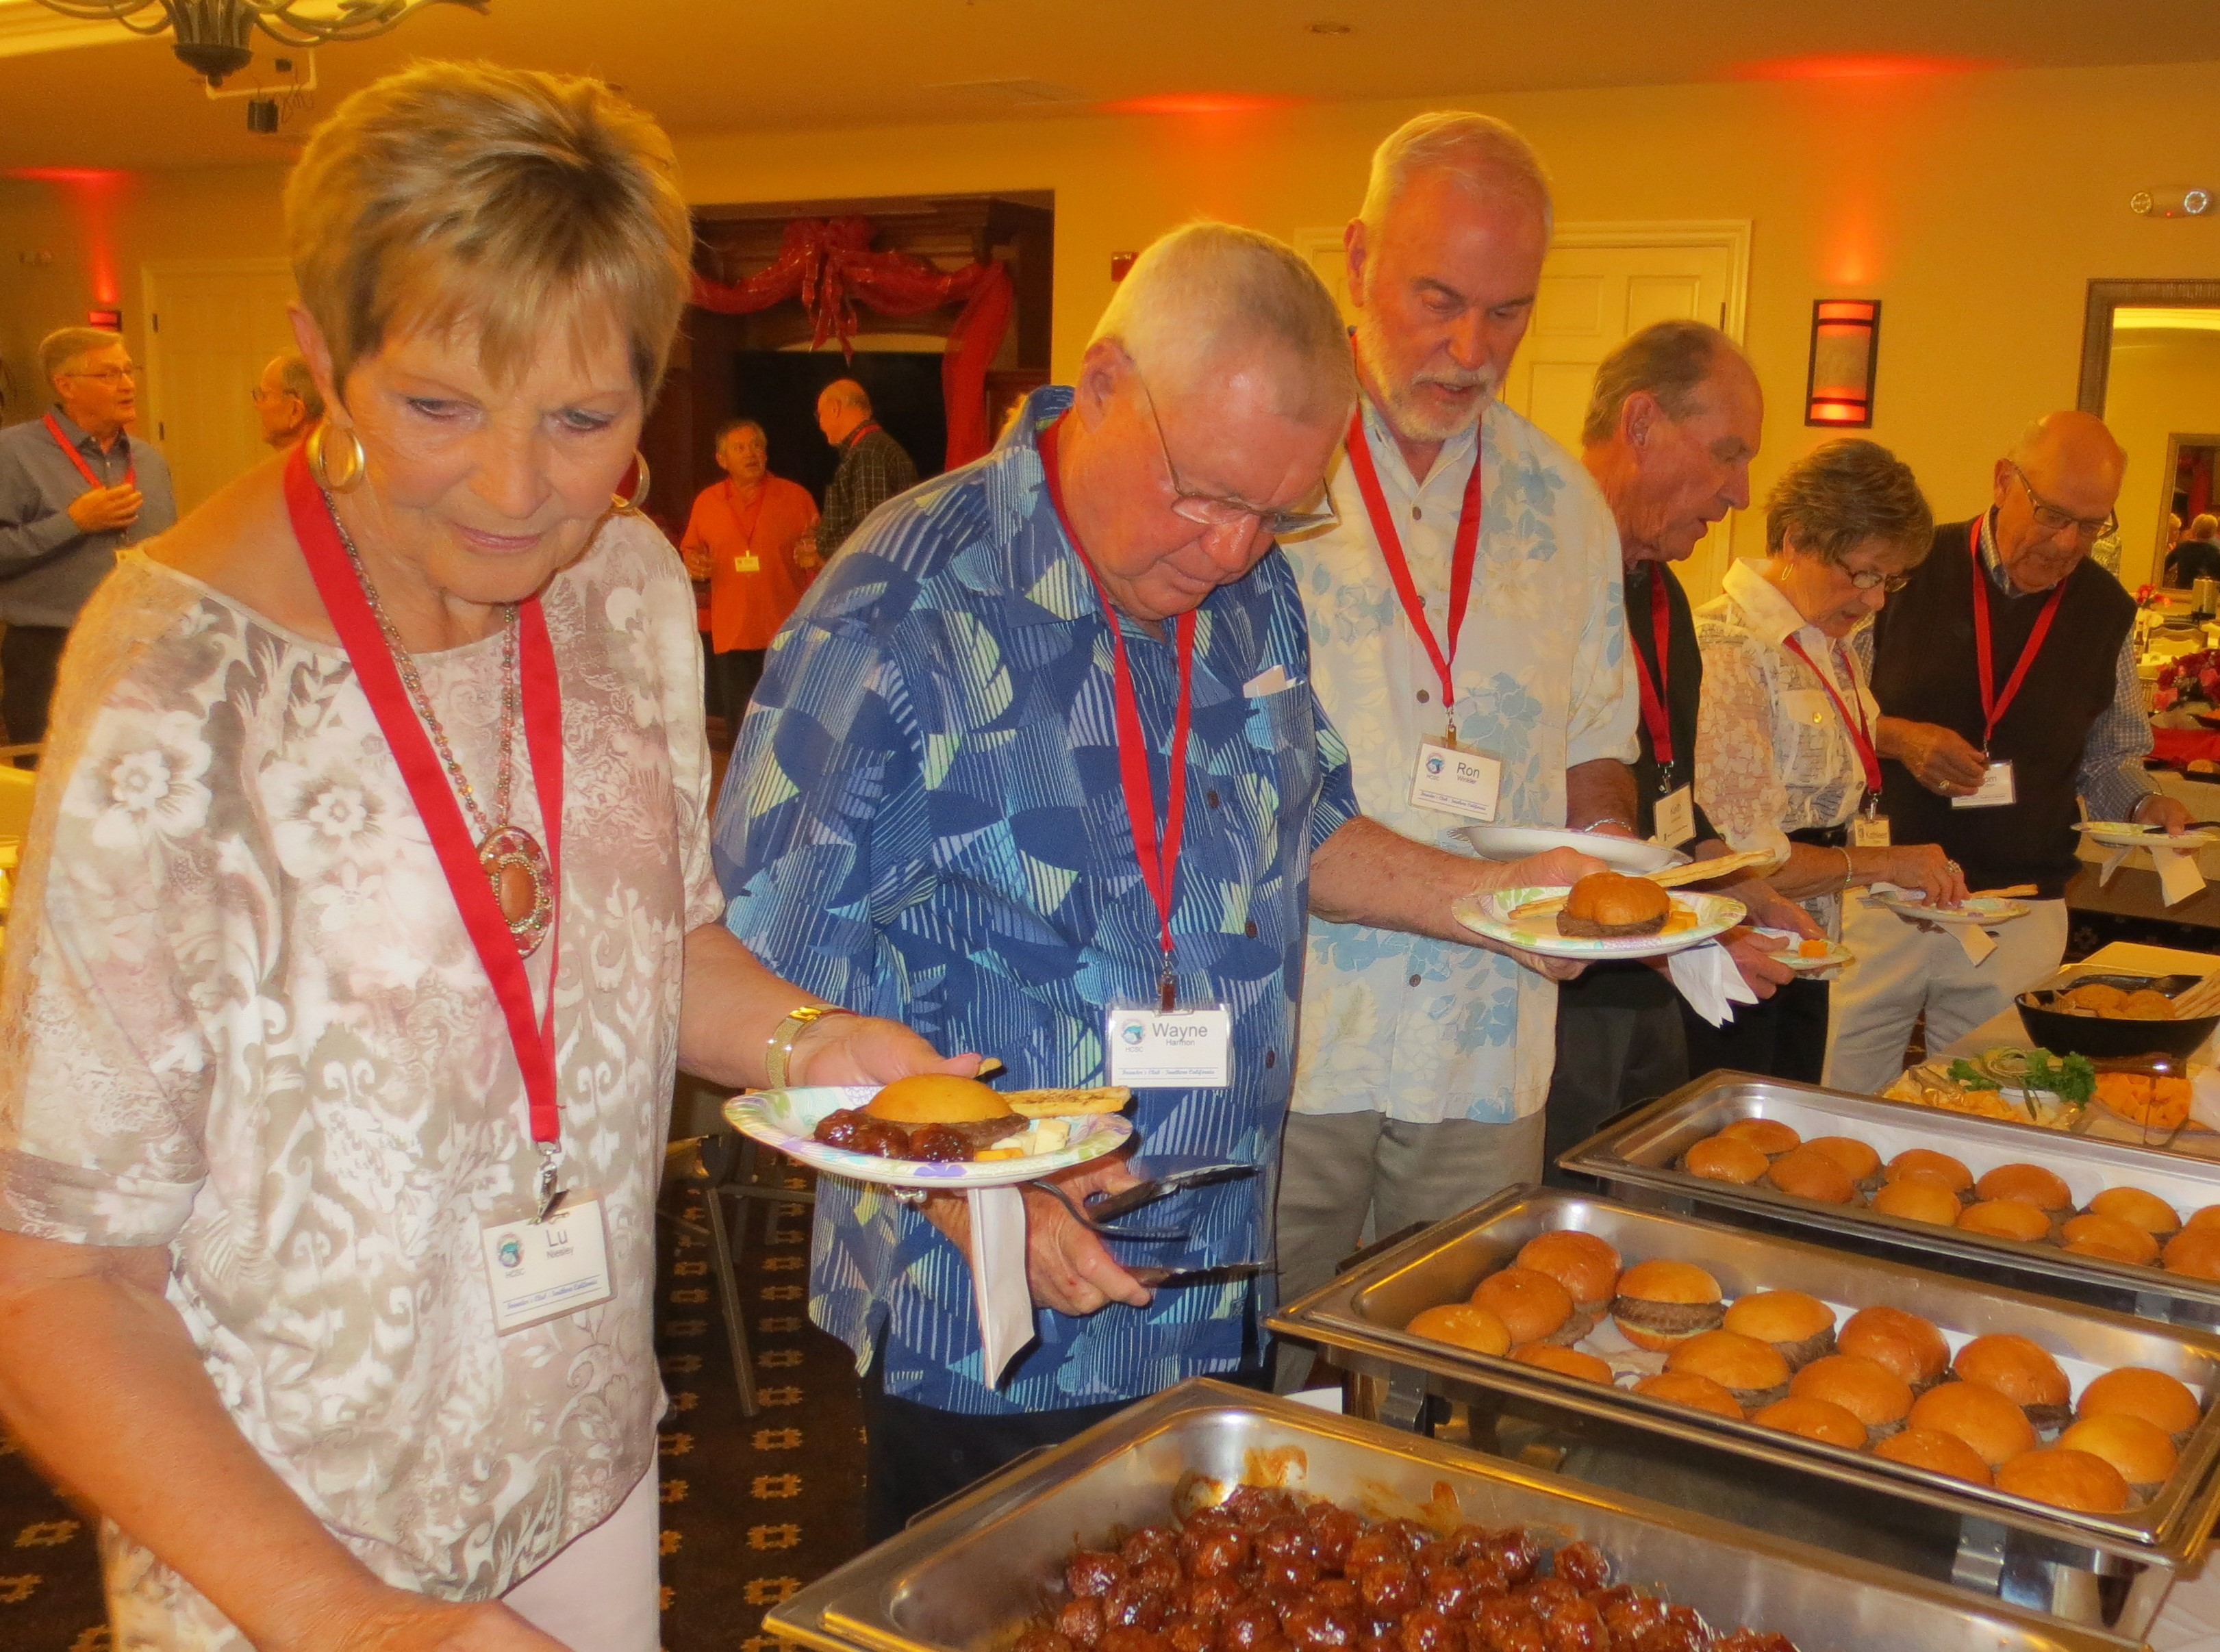 HCSC guests including Lu Niesley, Wayne Harmon and Ron   Winkler in the buffet line.